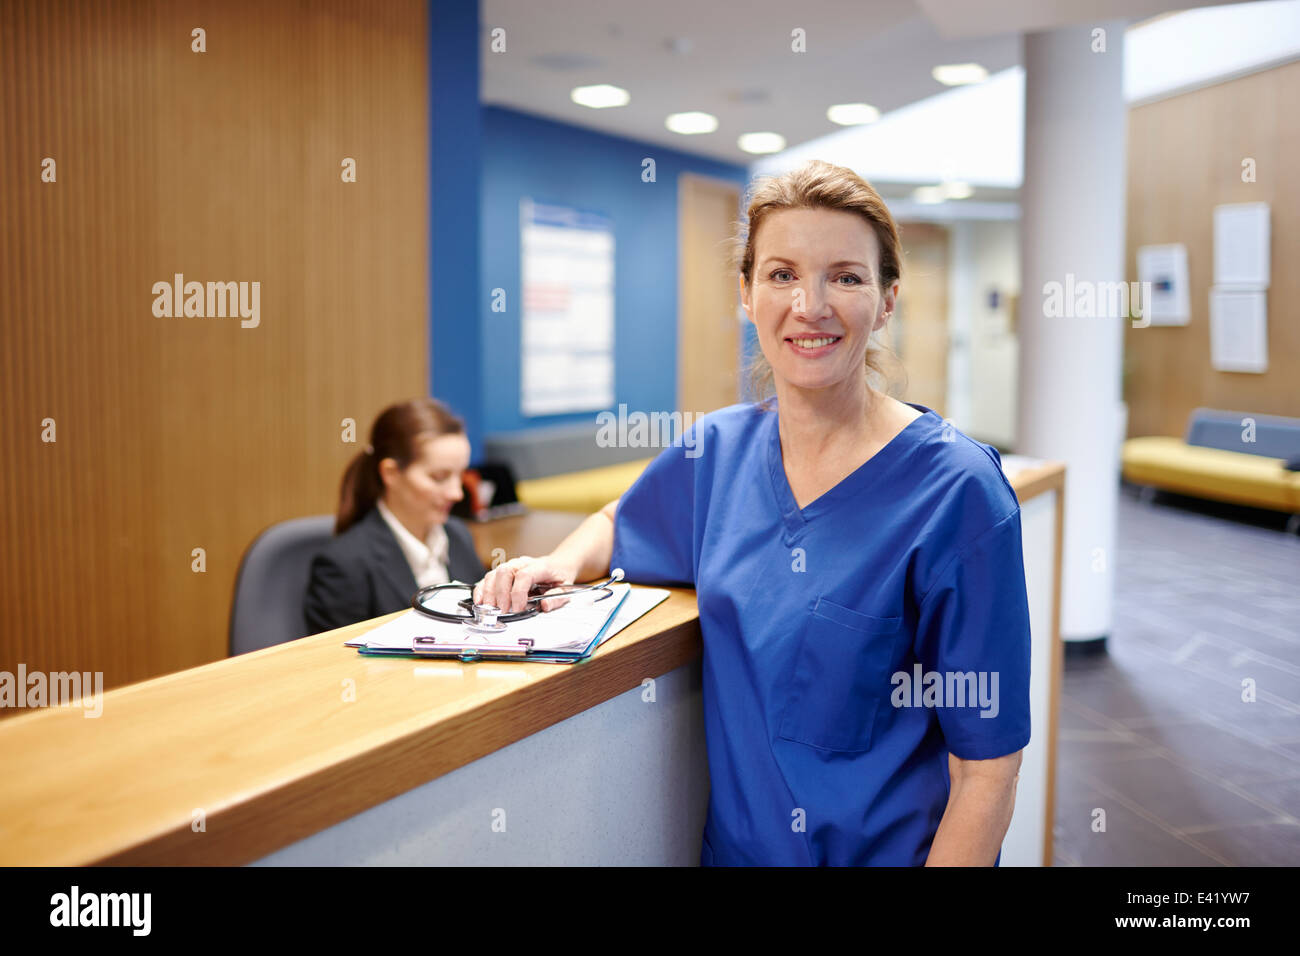 Nurse standing in hospital waiting room - Stock Image